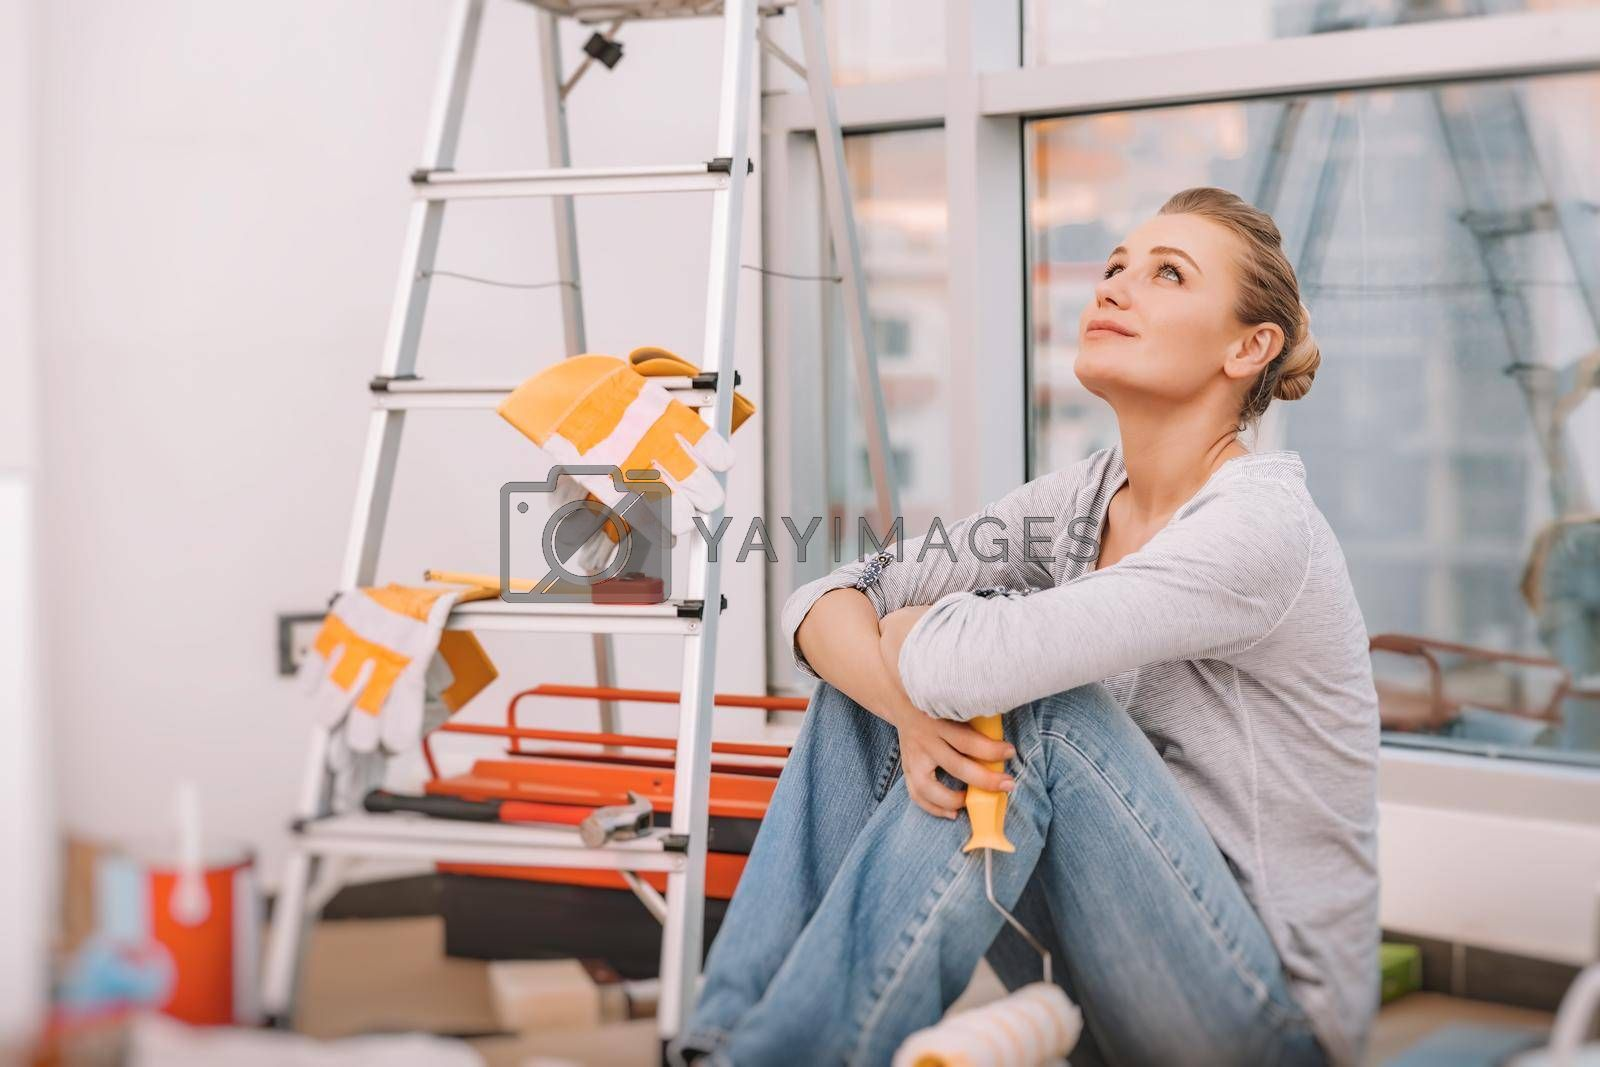 Dreamy Girl Sits on the Floor in the Flat with a Paint Roller and Imagines what a Cool Renovation She Will Make. Repairs in the New Apartment.